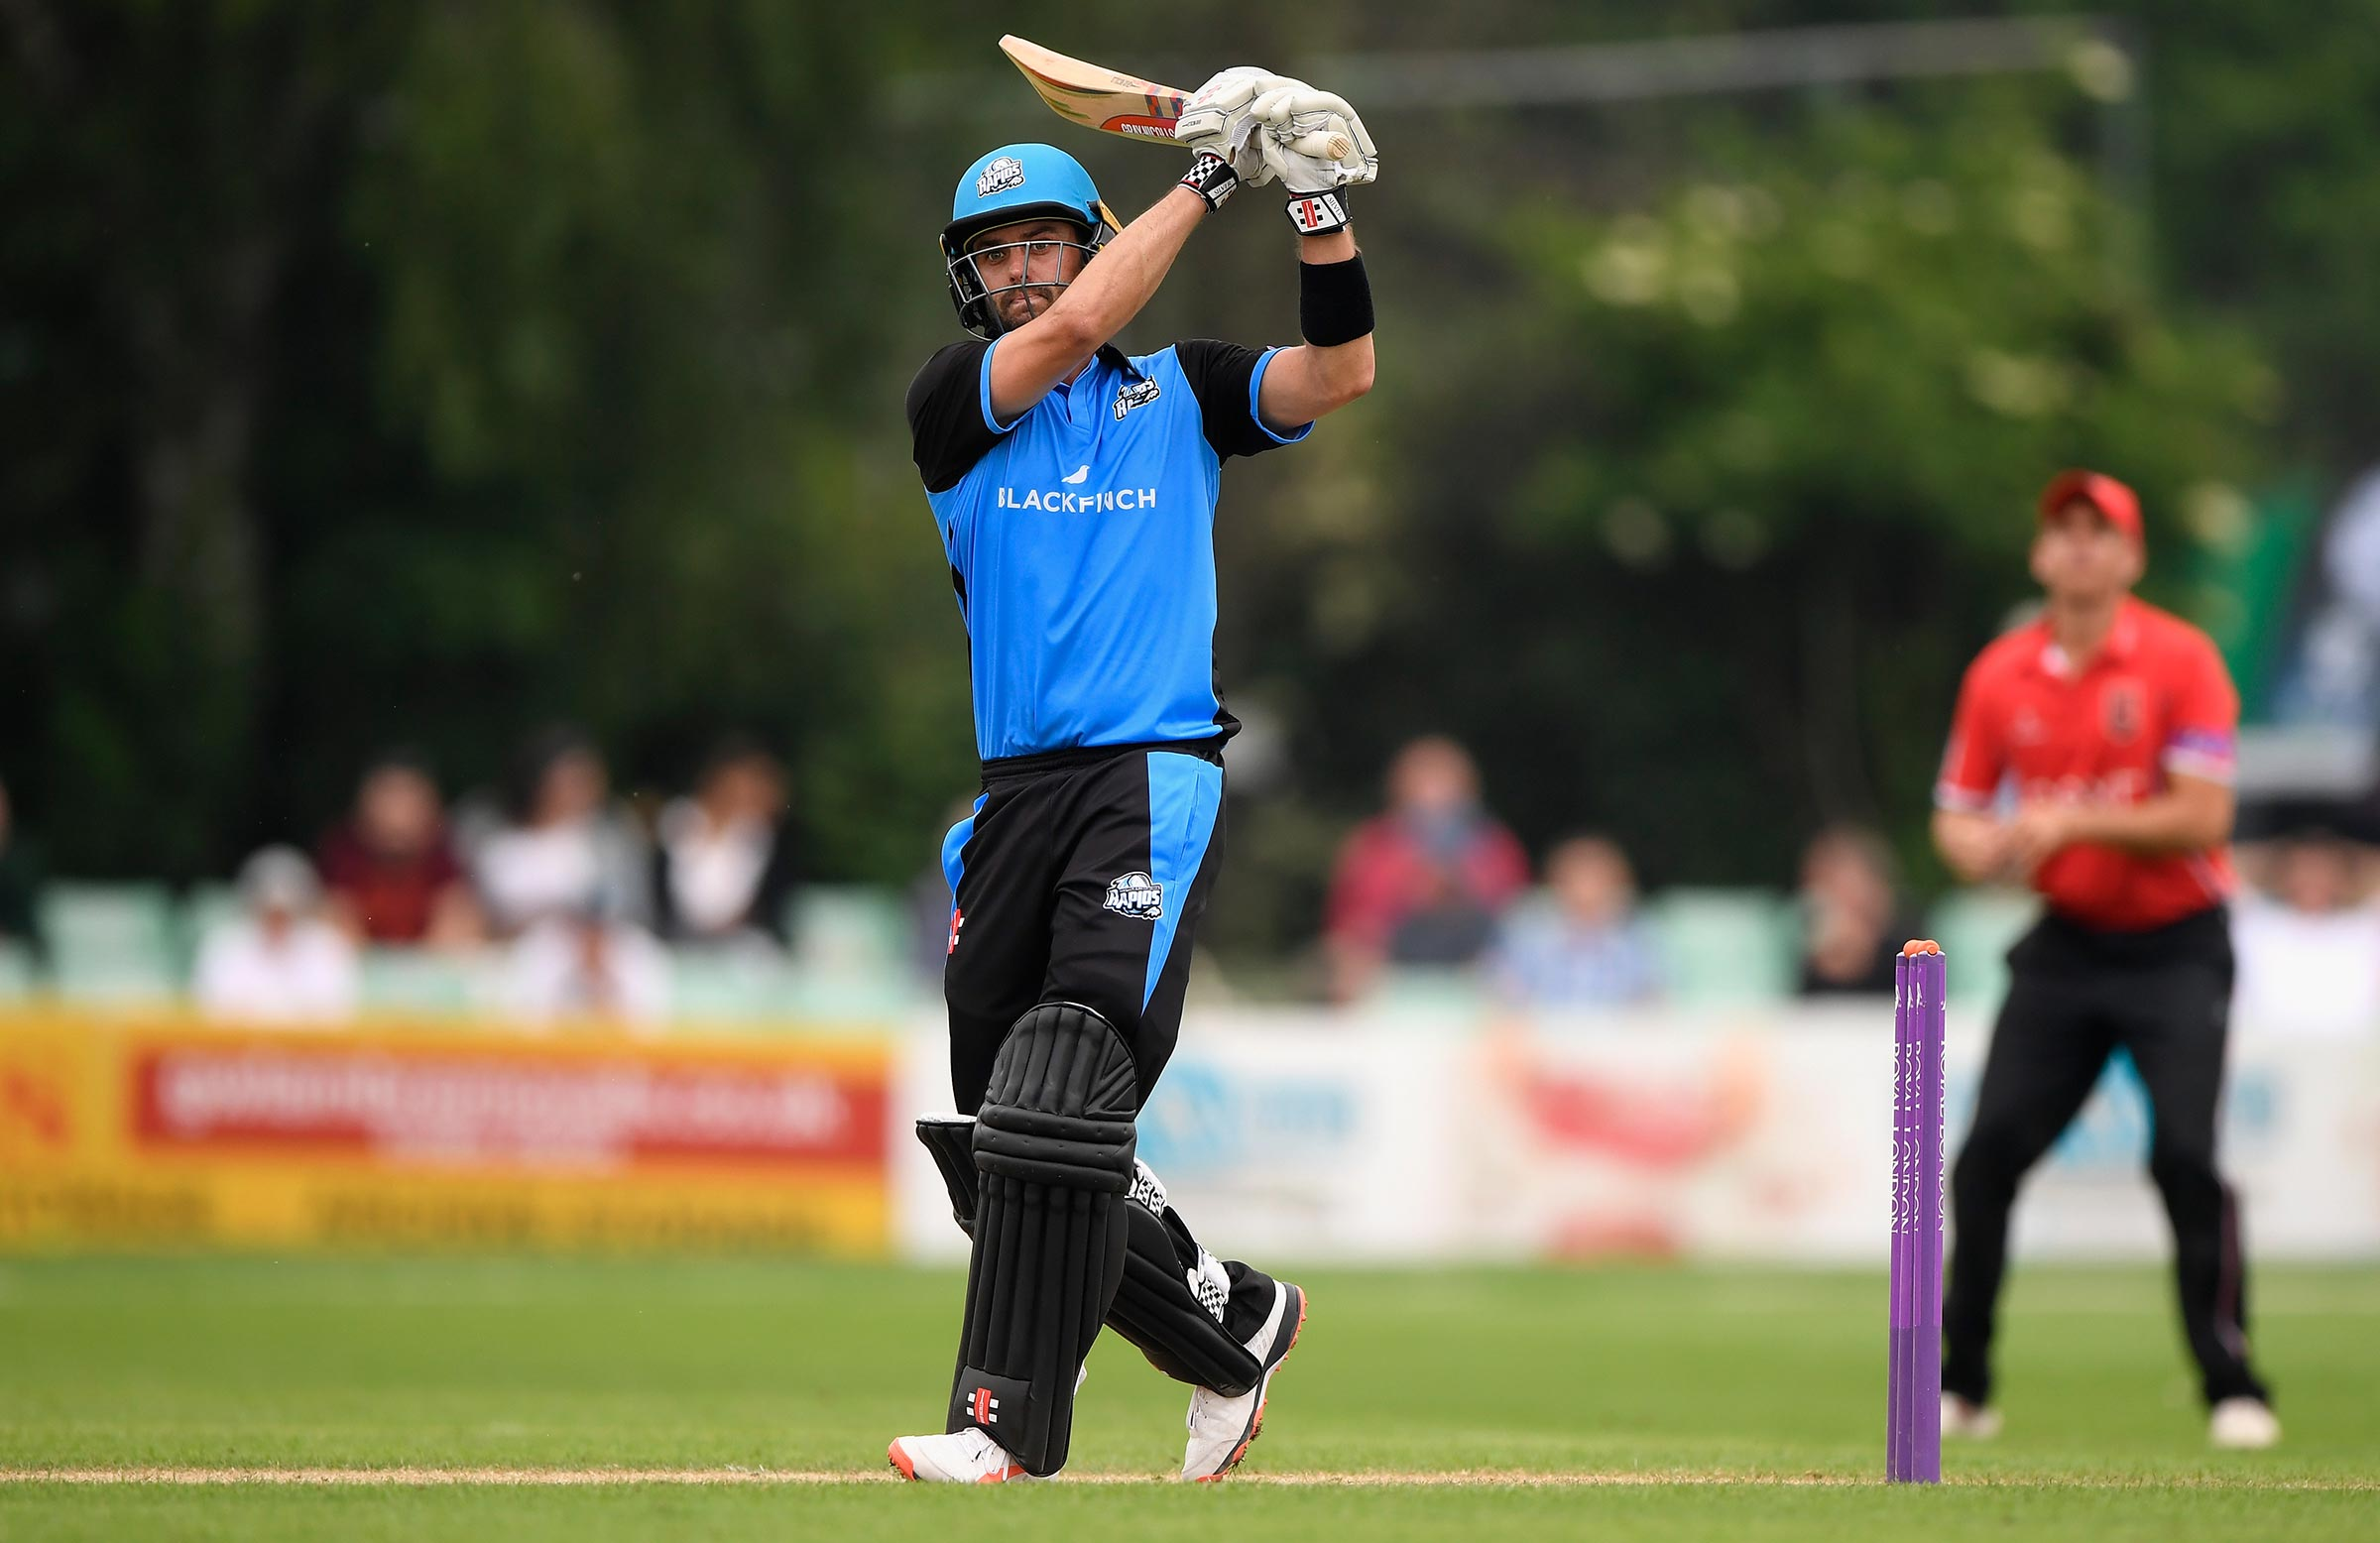 Ferguson hit five sixes in his stunning knock // Getty